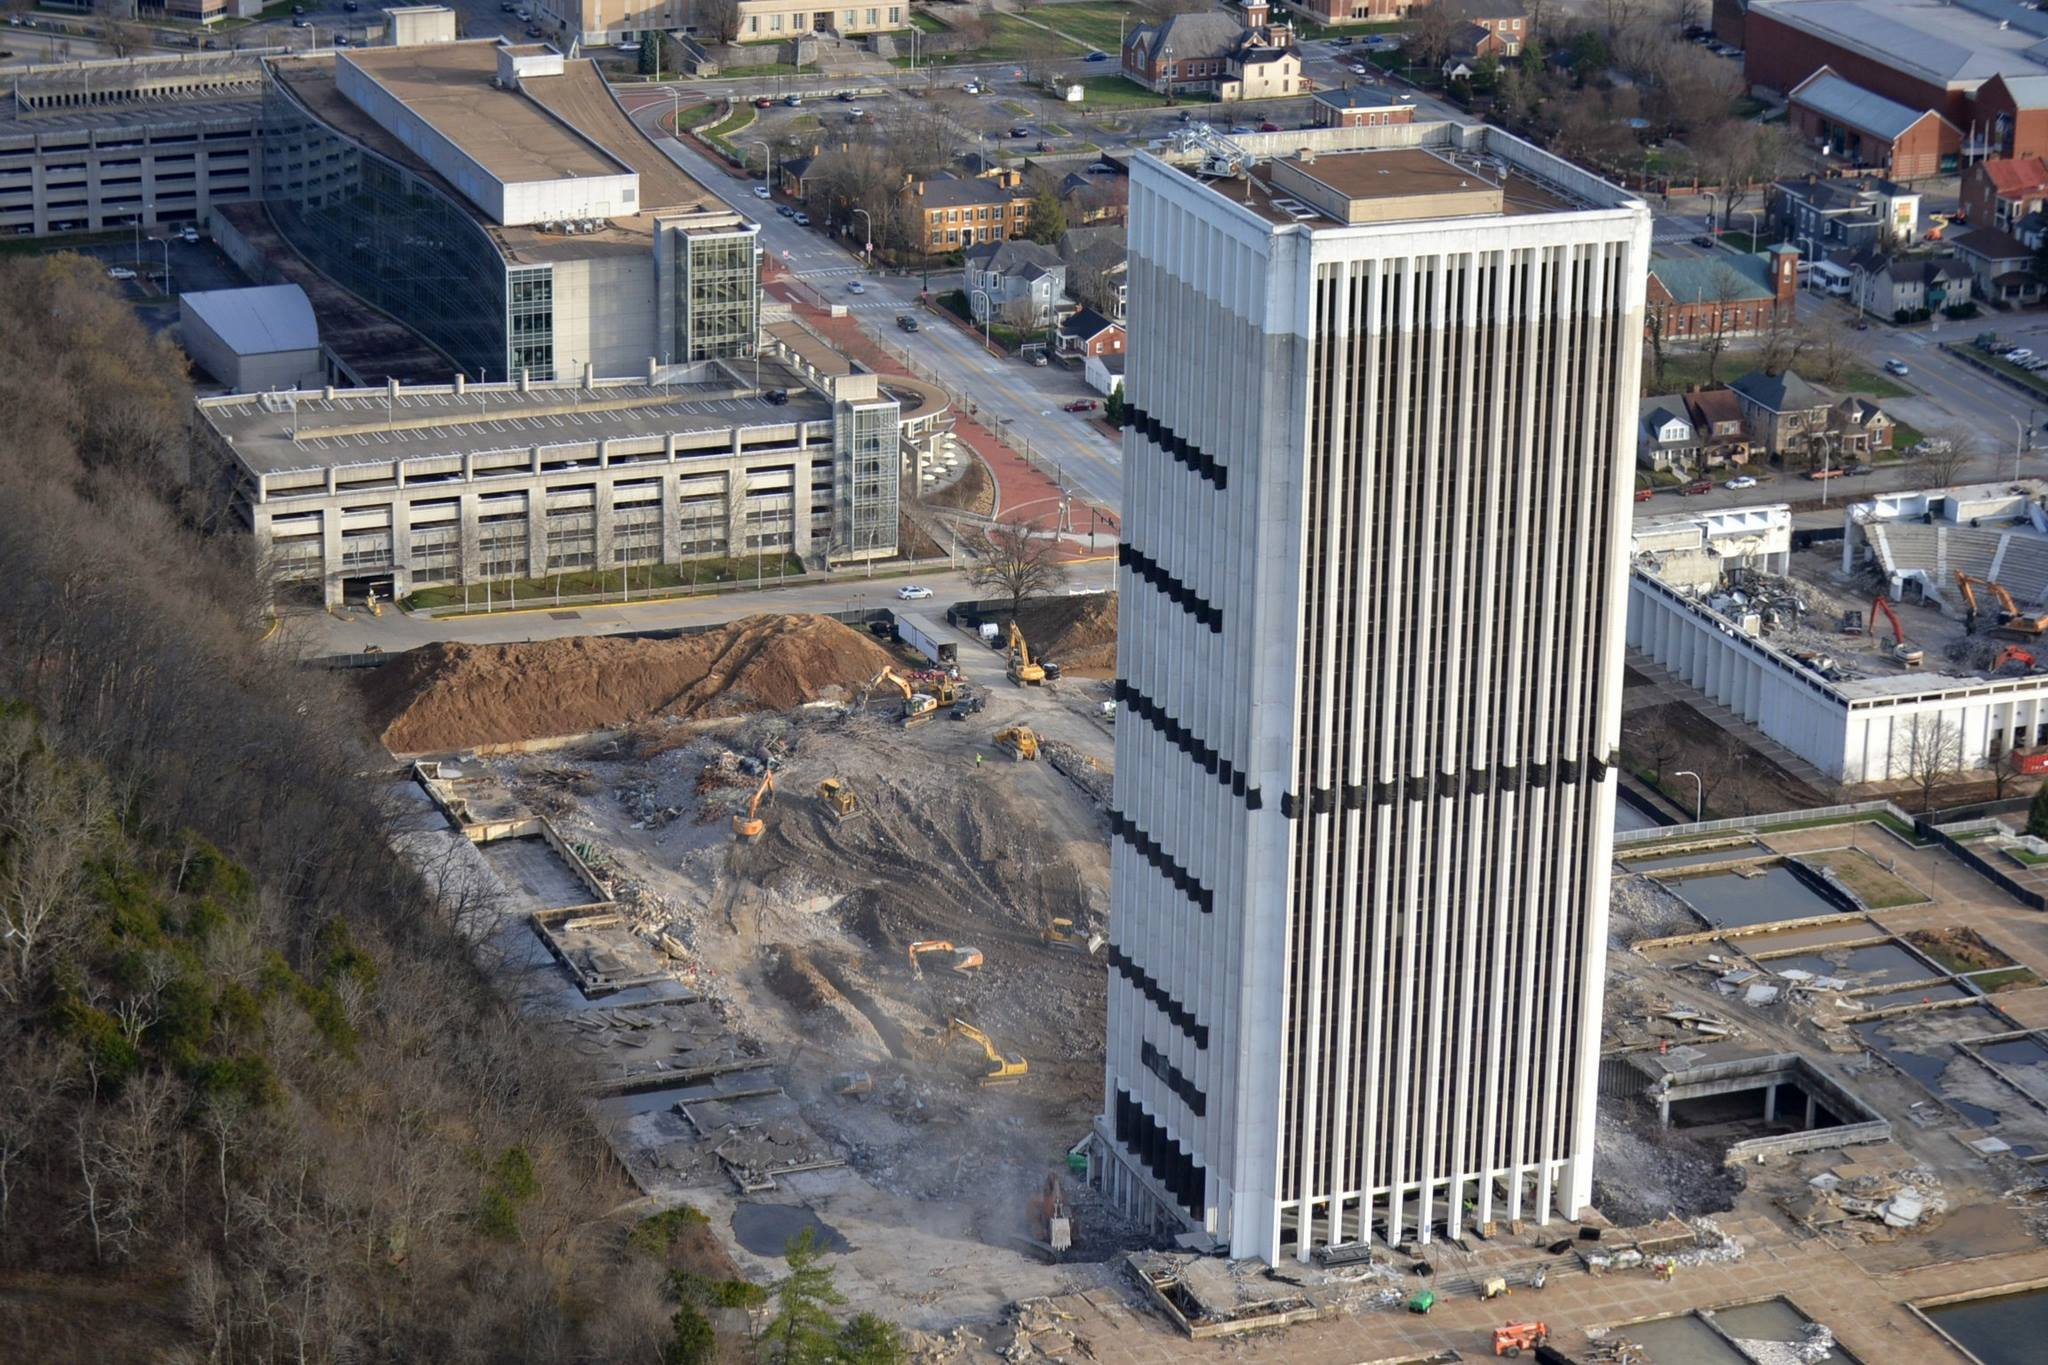 Implosion: Tallest building in Kentucky's capital demolished